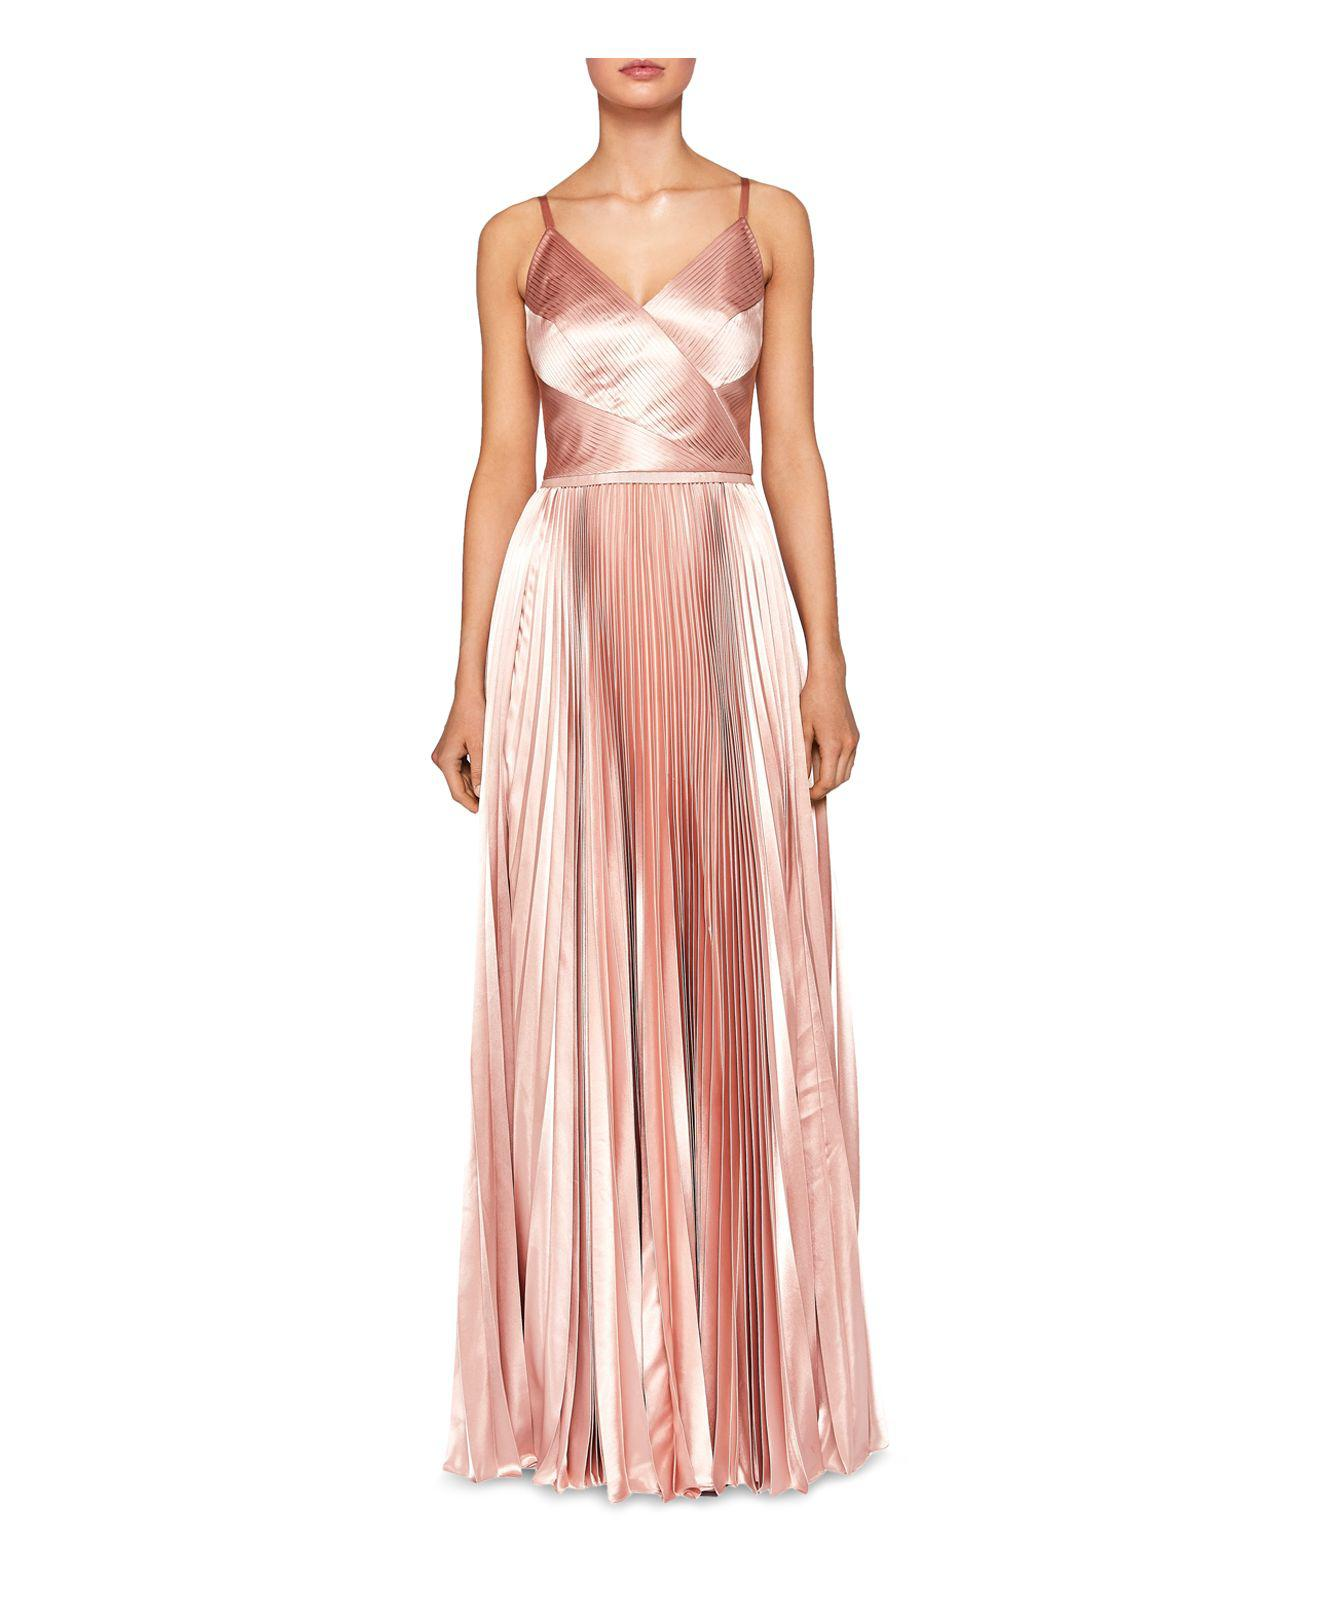 b6081d2dee65 Lyst - Ted Baker Efrona Pleated Satin Gown in Pink